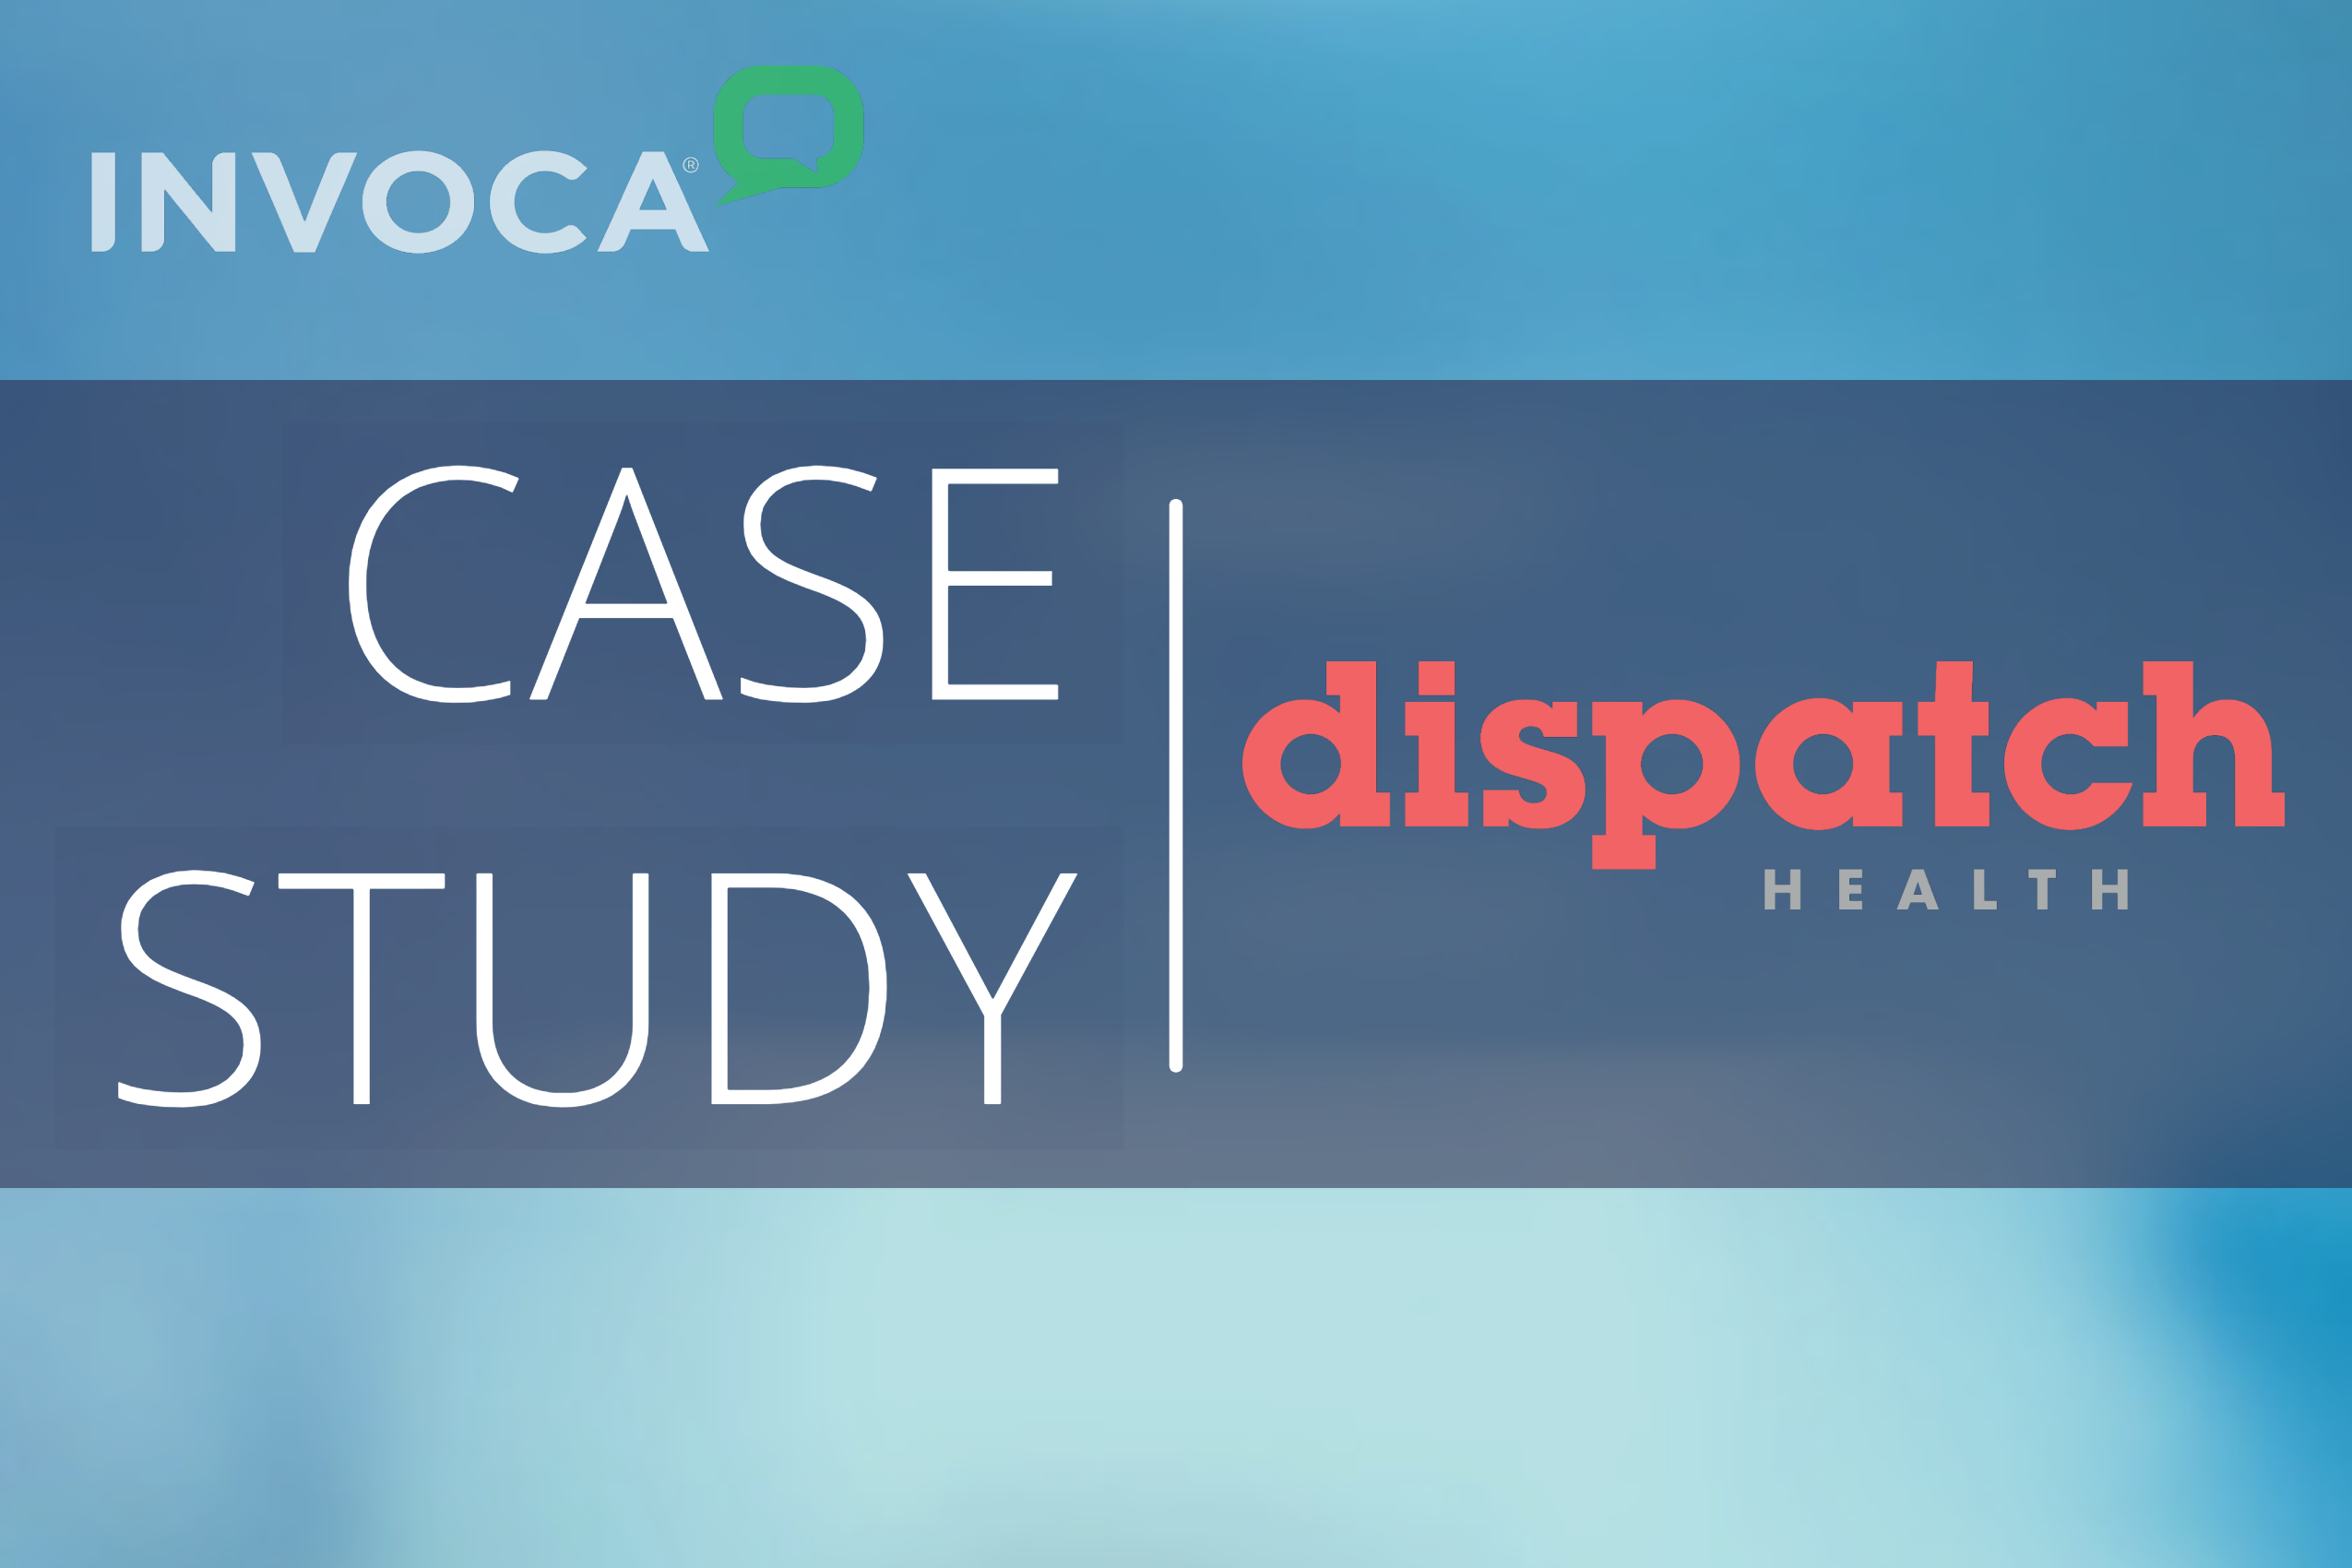 How a Healthcare Provider Uses Invoca to Increase Marketing ROI and Reduce CPC